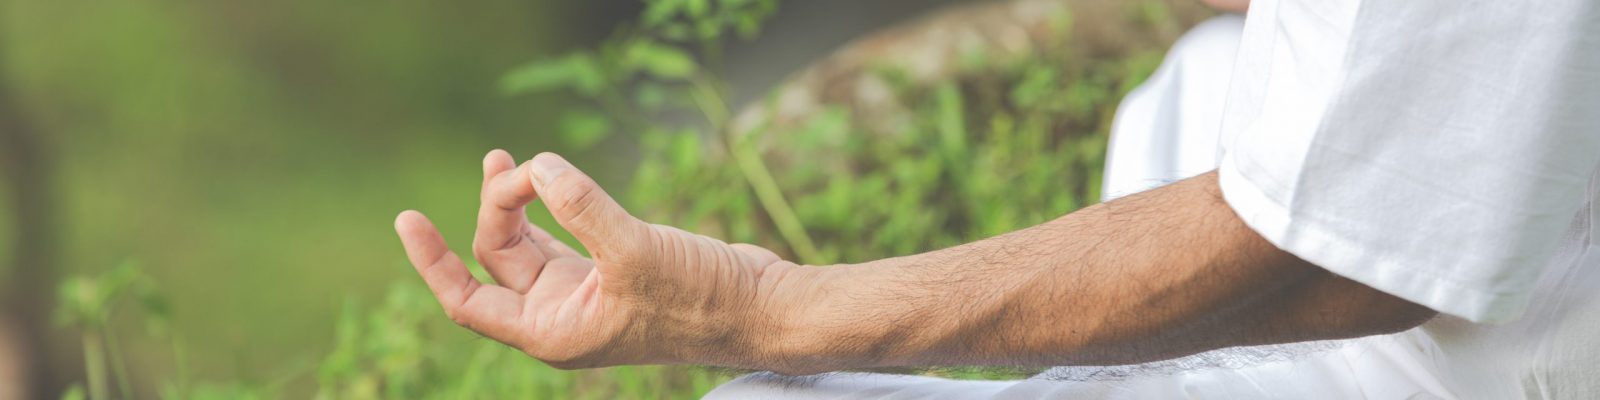 A close up picture of hands doing meditation